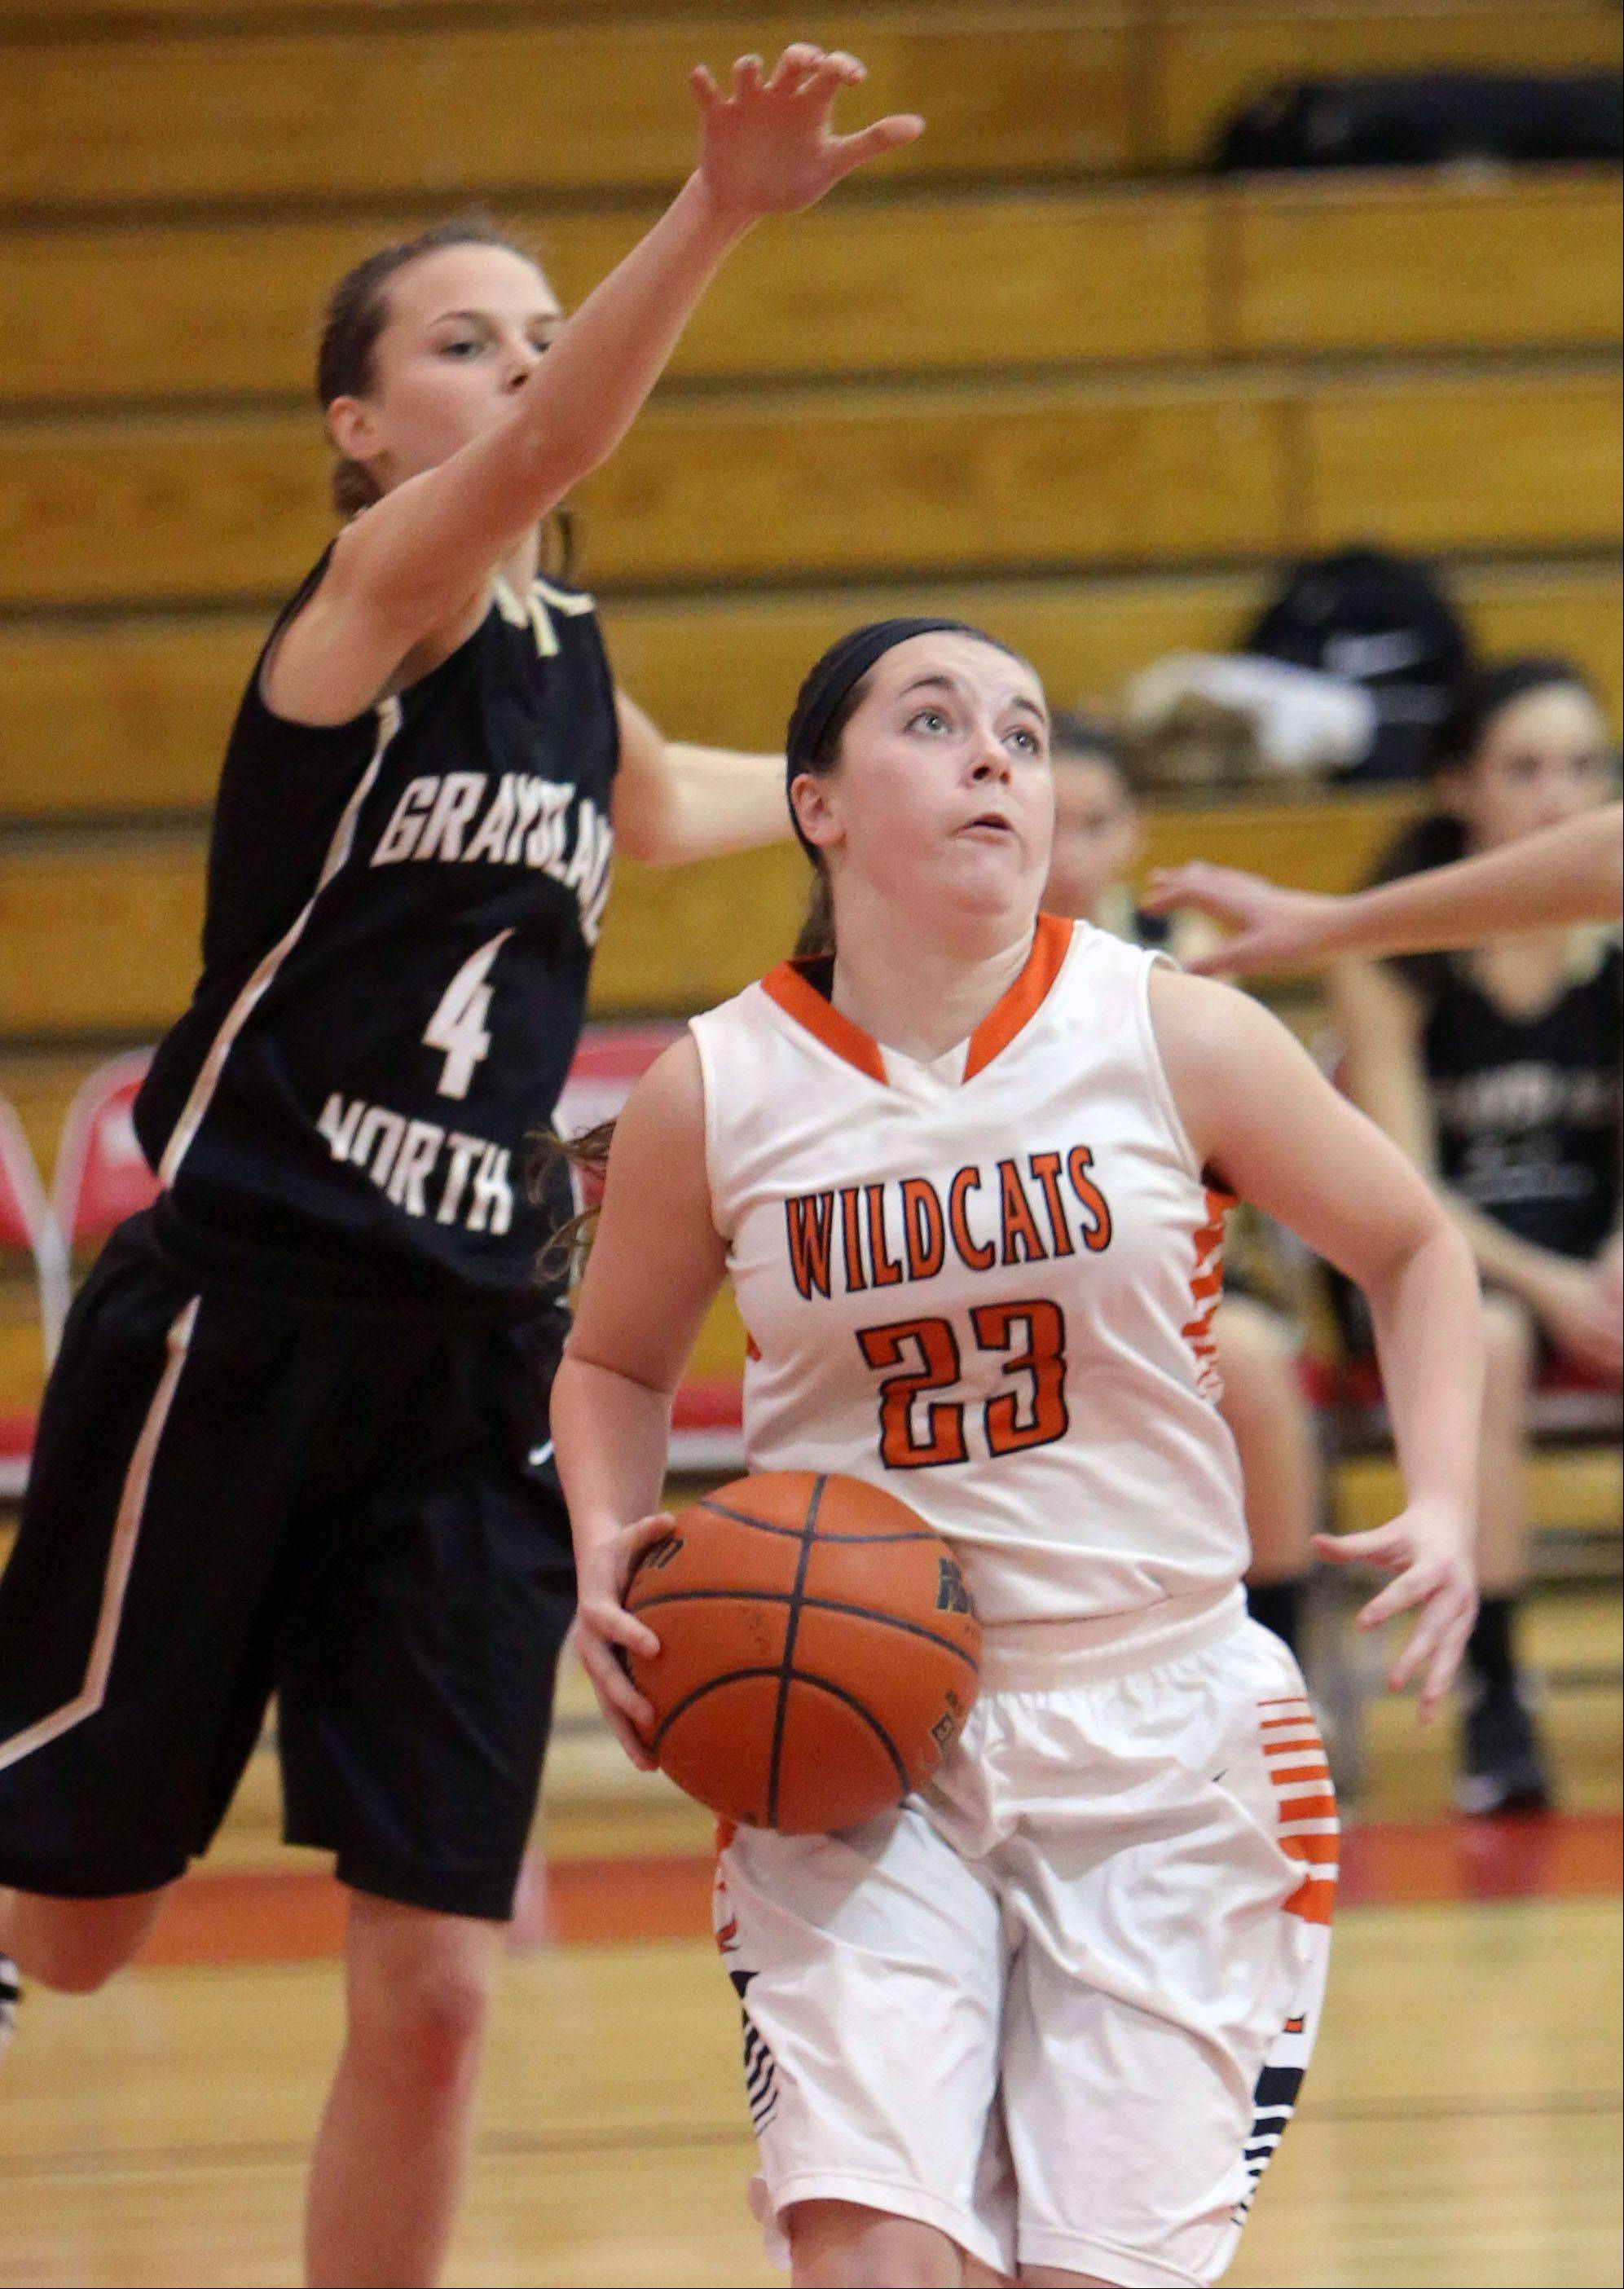 Libertyville's Sydney Mudd, right, drives on Grayslake North's Maggie Fish during their game Thursday at Mundelein High School.